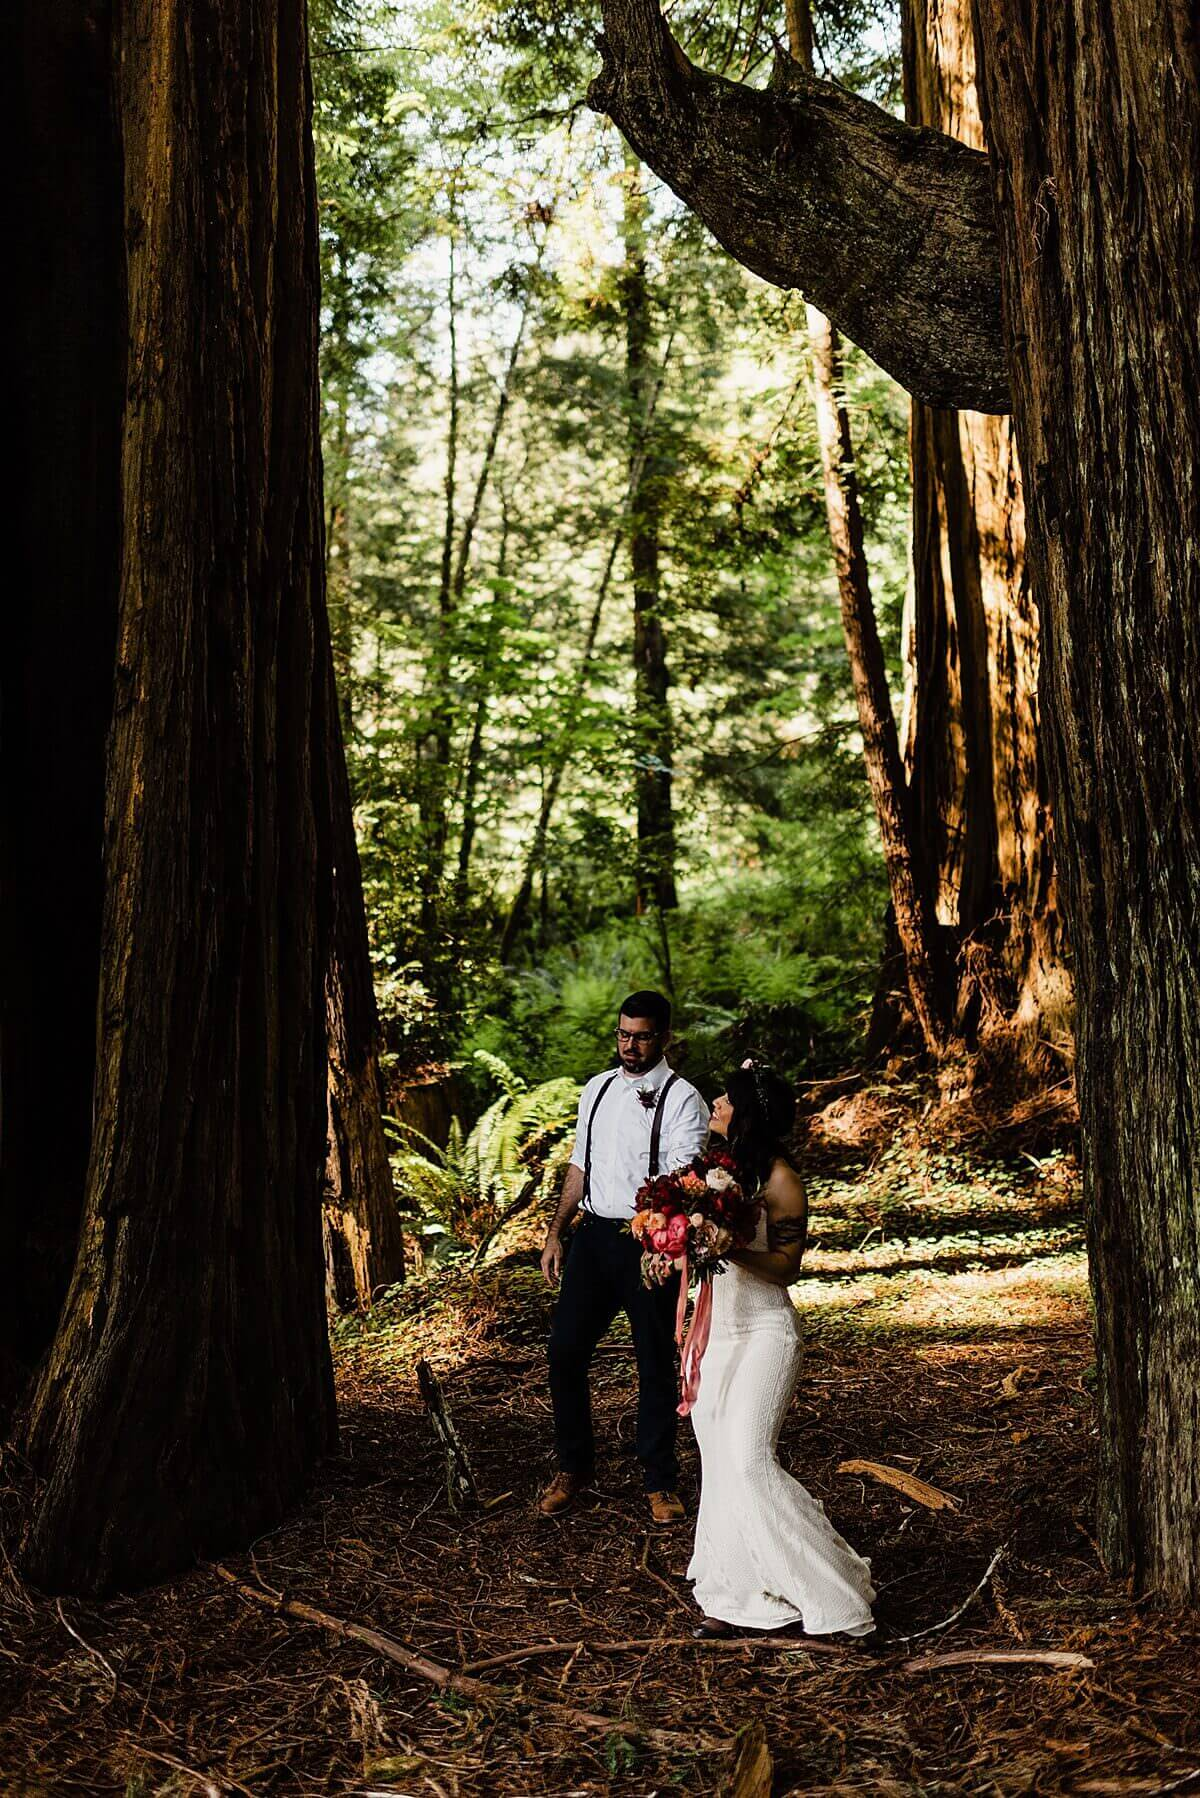 Allison-Brooks-Jedediah-Smiith-Redwoods-Adventure-Elopement-Wedding-S-Photography-Blog_0003.jpg